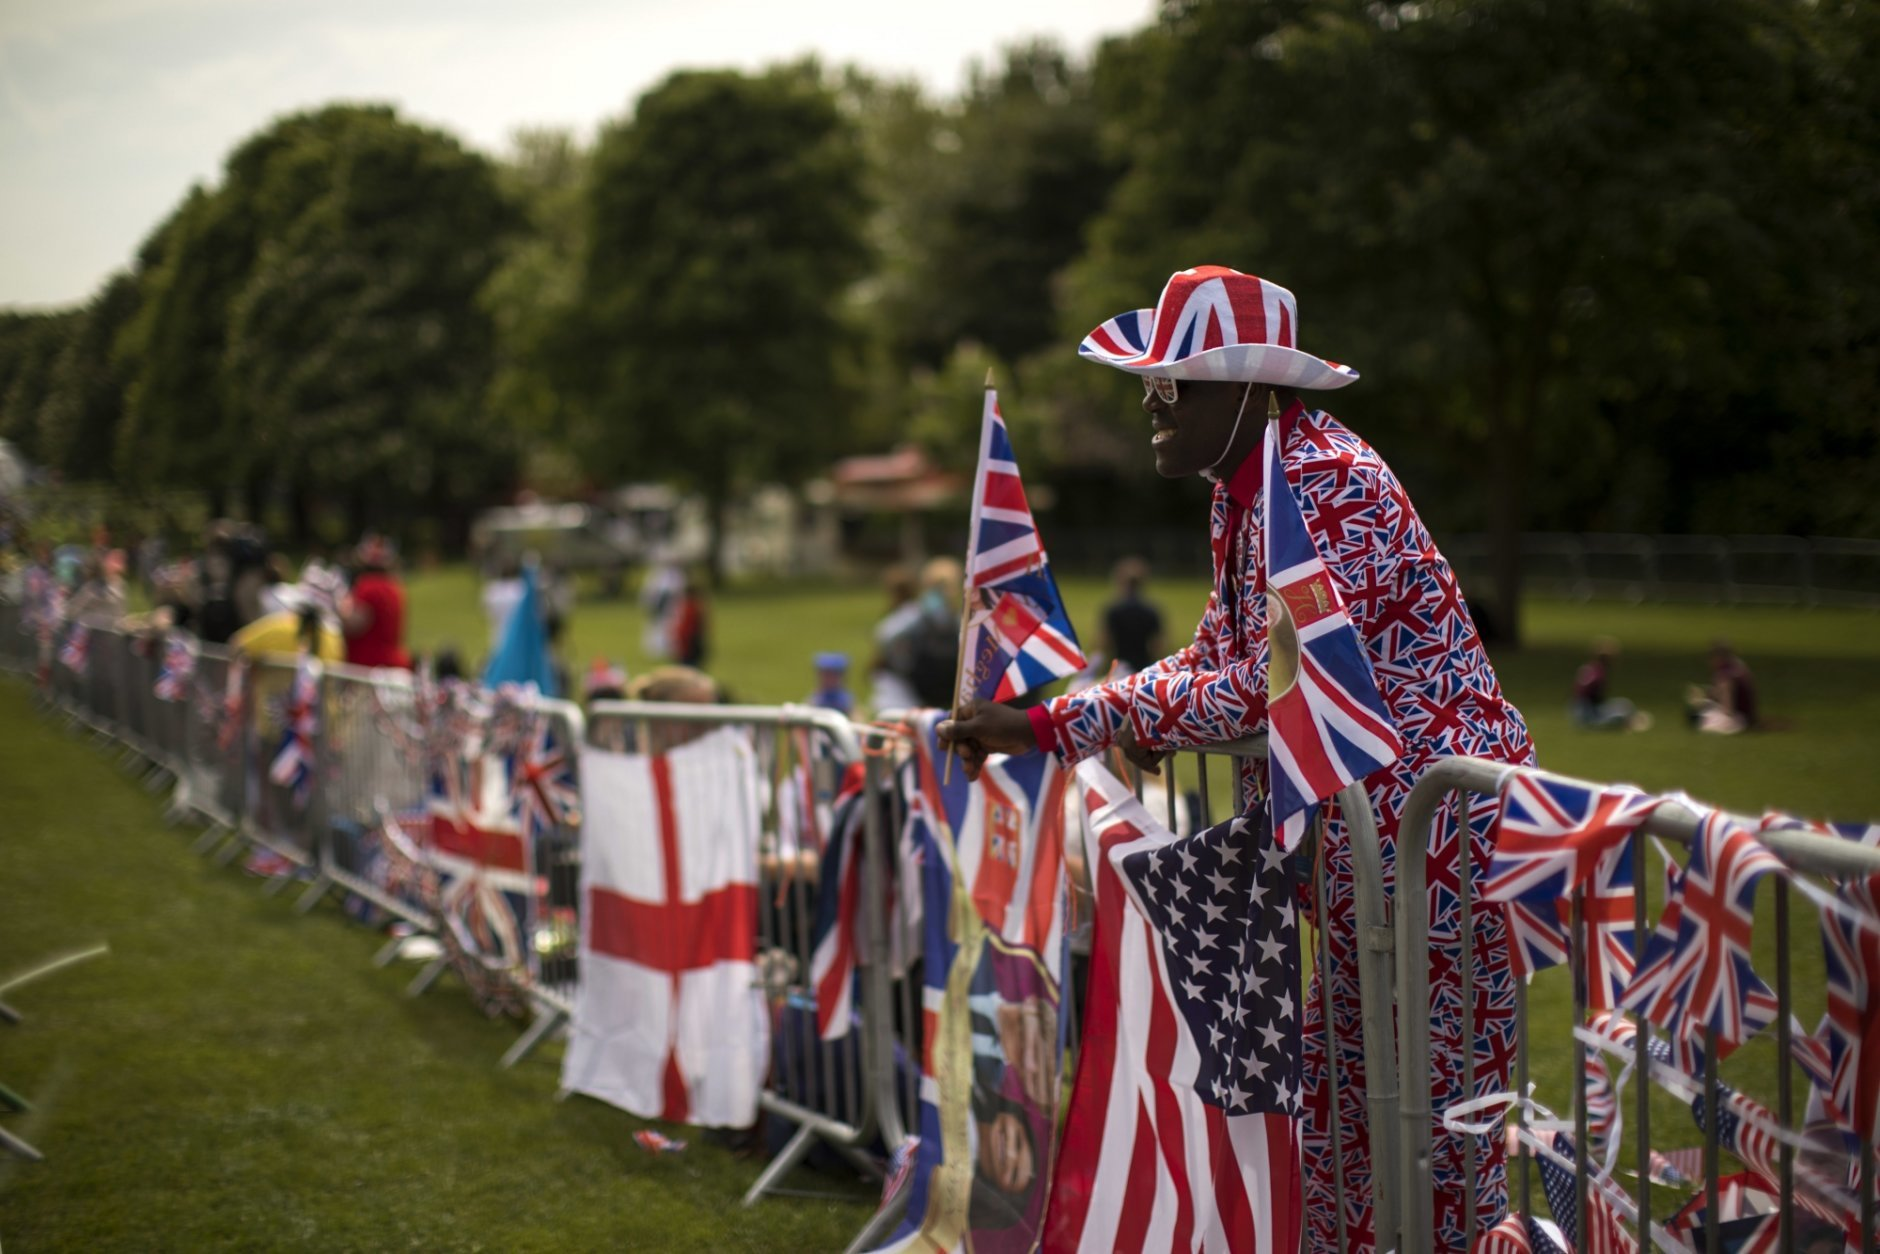 Joshua Arane from Battersea stands on the security fence on the Long walk ahead of the wedding of Prince Harry and Meghan Markle in Windsor, England, Friday, May 18, 2018. Preparations continue in Windsor ahead of the royal wedding of Britain's Prince Harry and Meghan Markle Saturday May 19. (AP Photo/Emilio Morenatti)